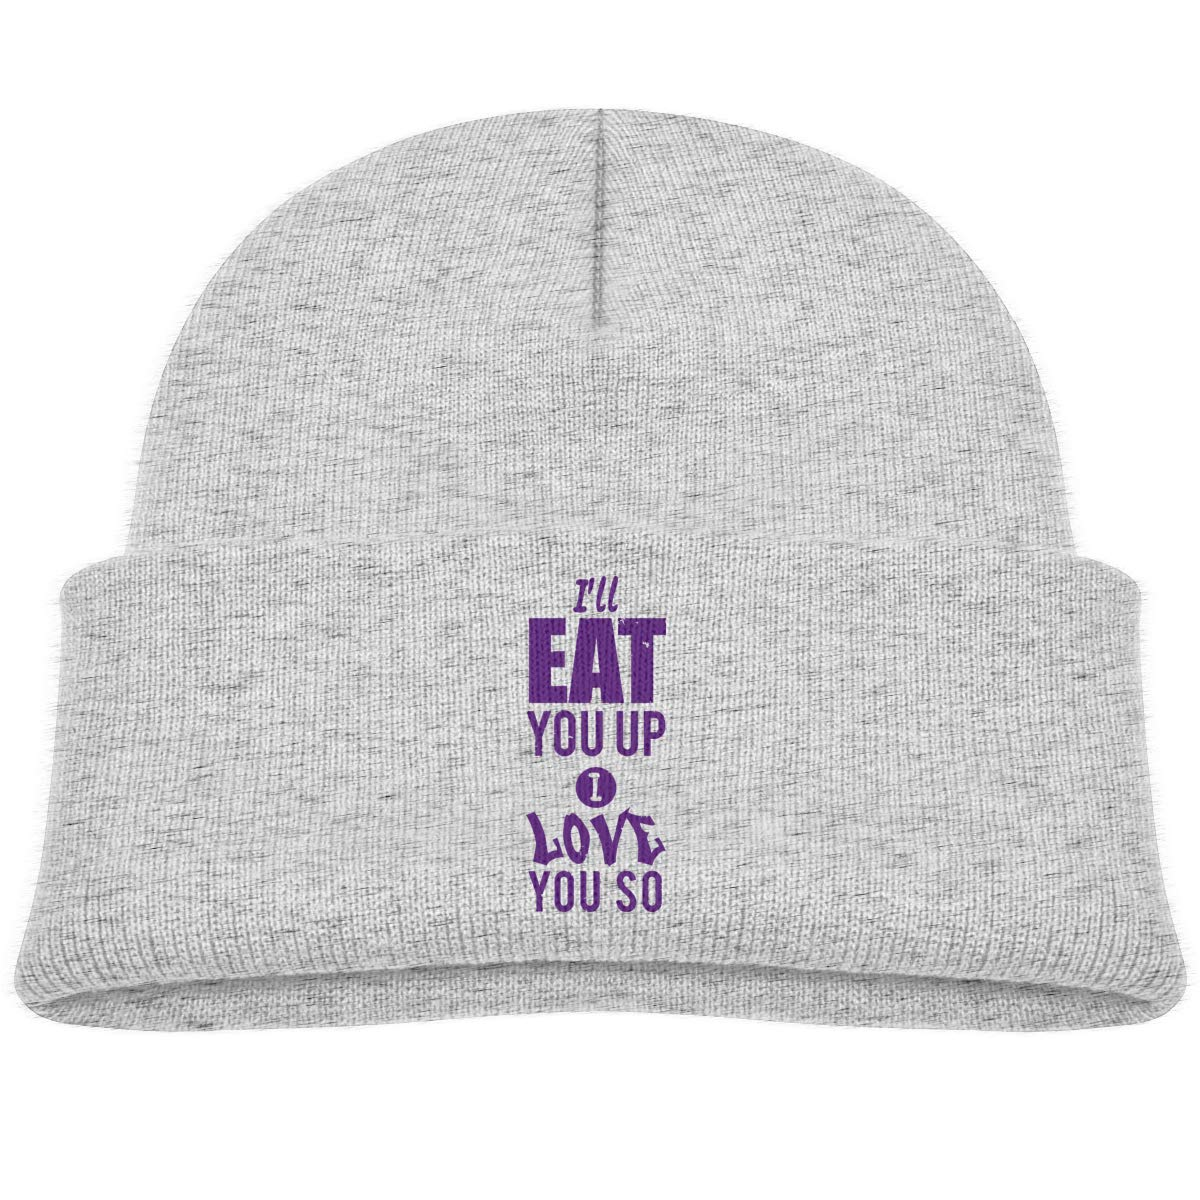 Ill Eat You Up I Love You So Infant Knit Hat Kids Beanies Caps